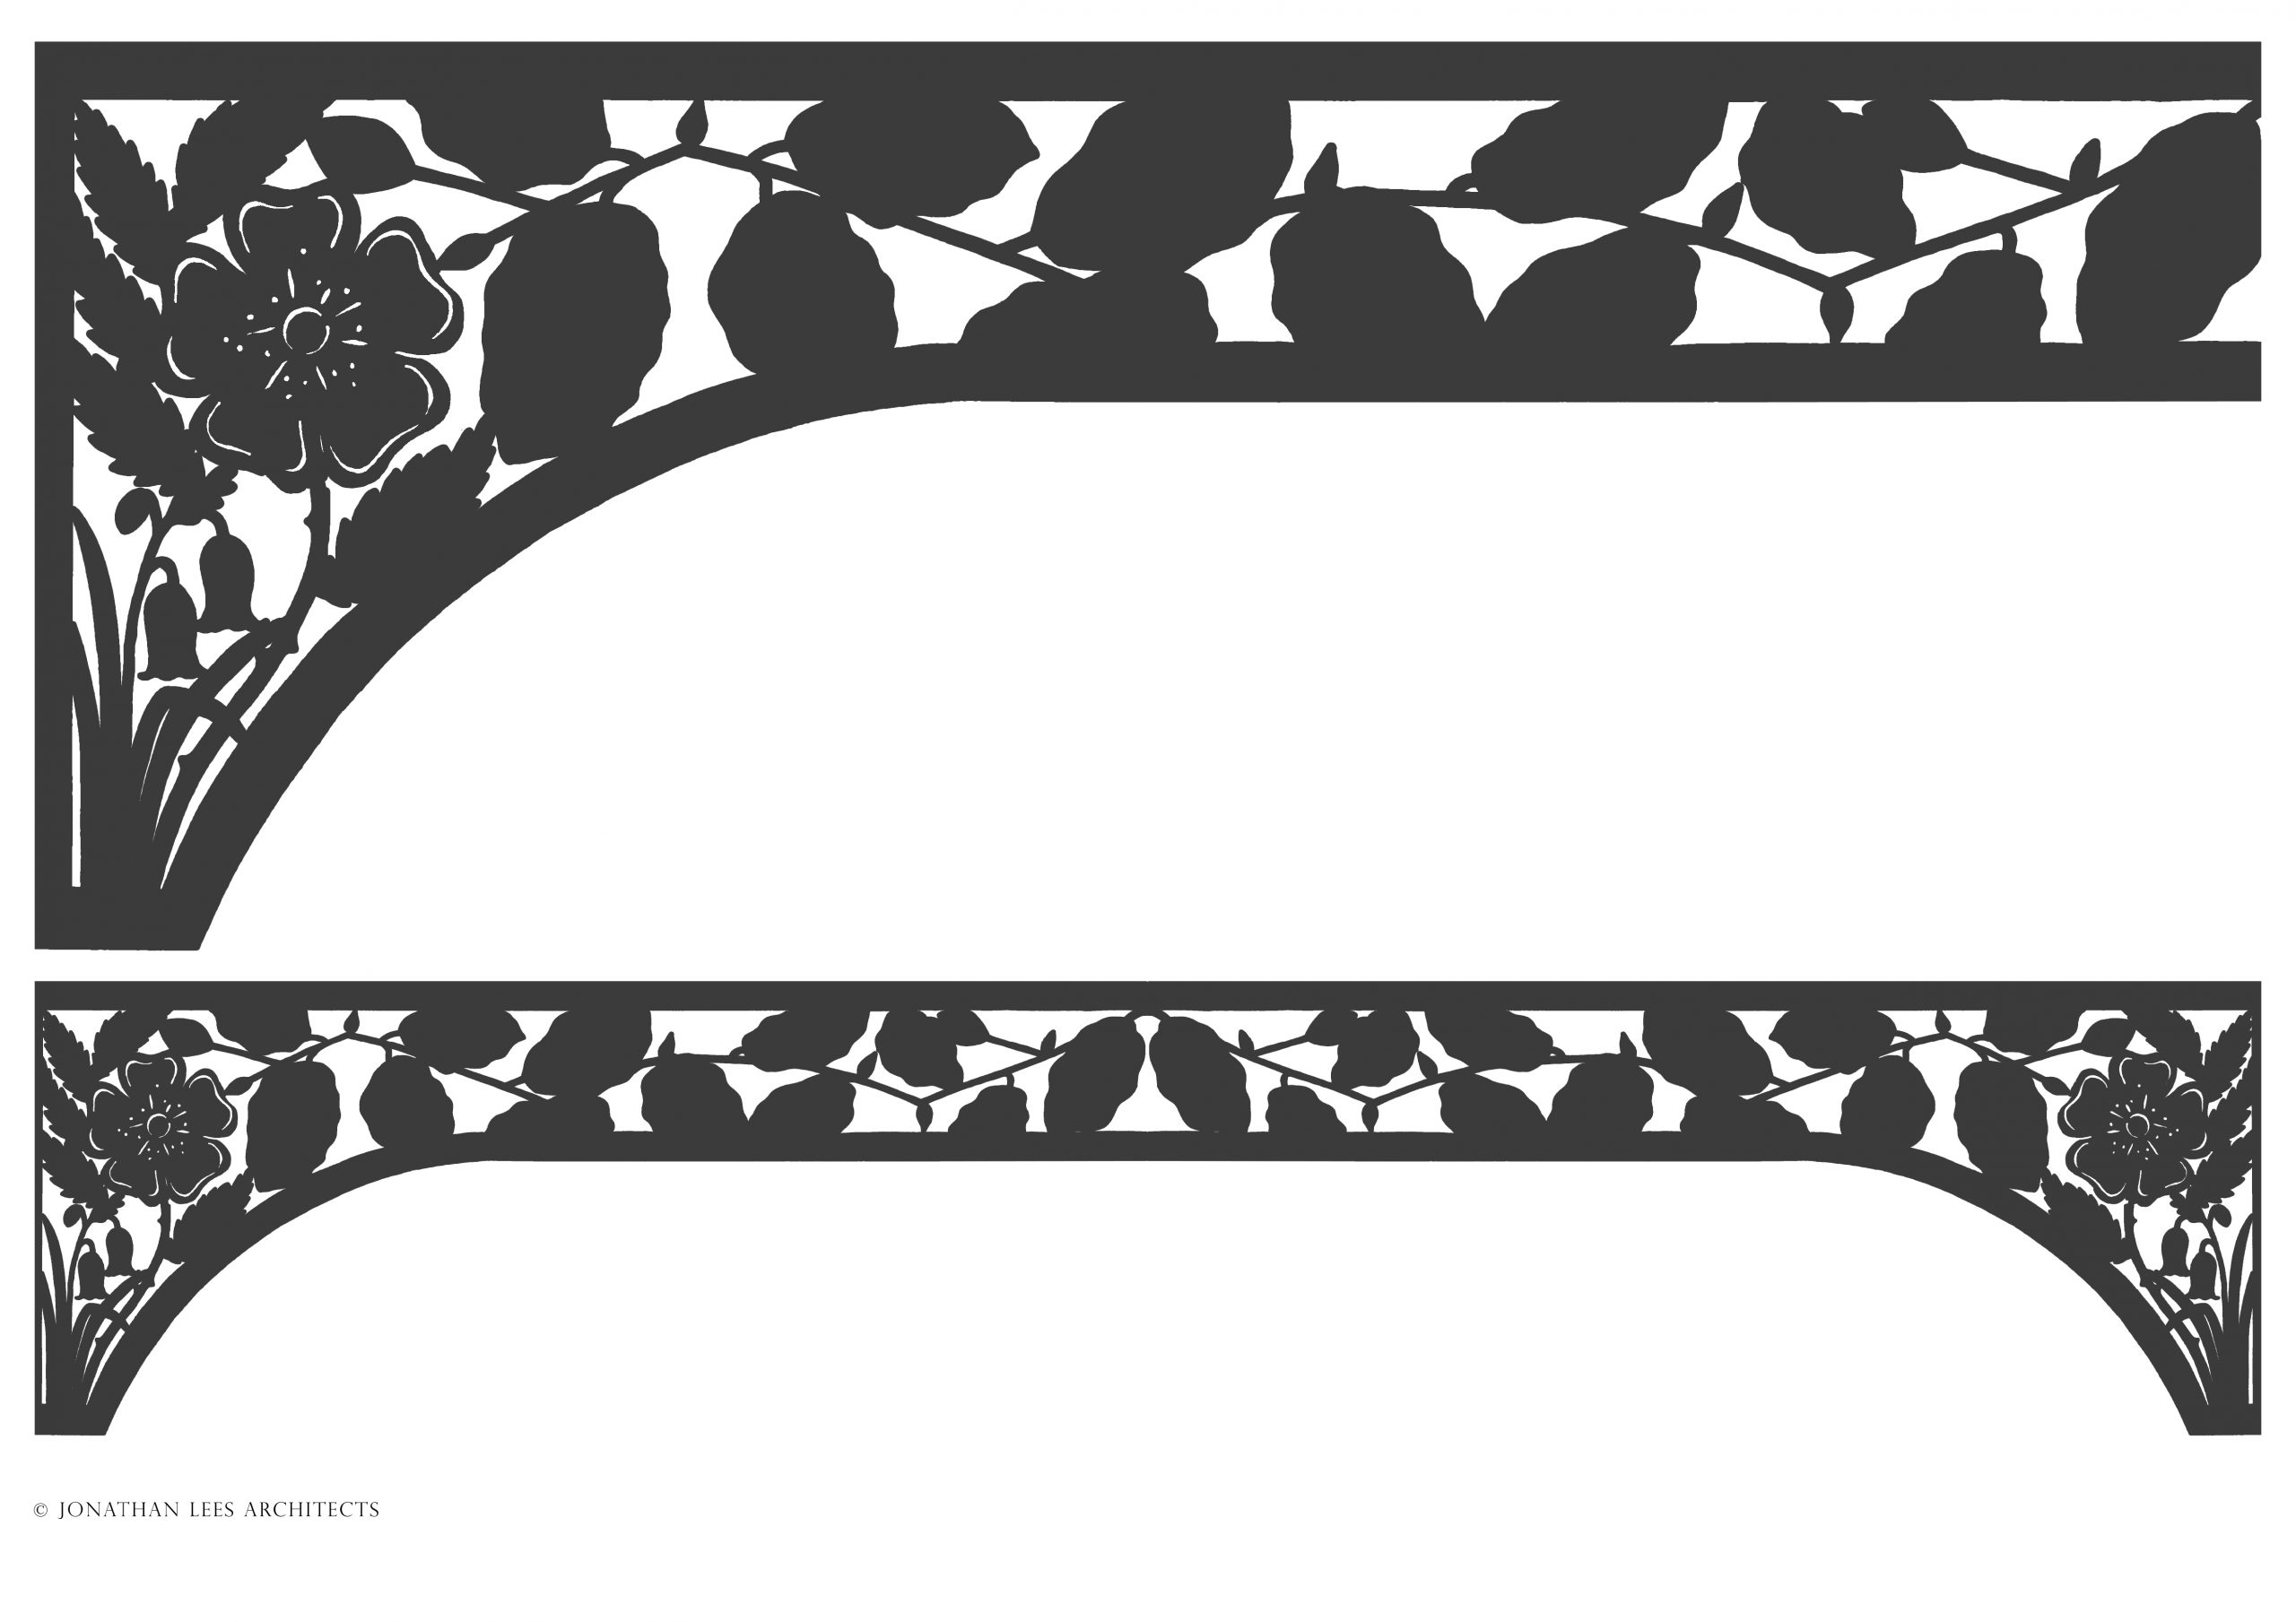 Ornate metal staircase panel design with beech leaves